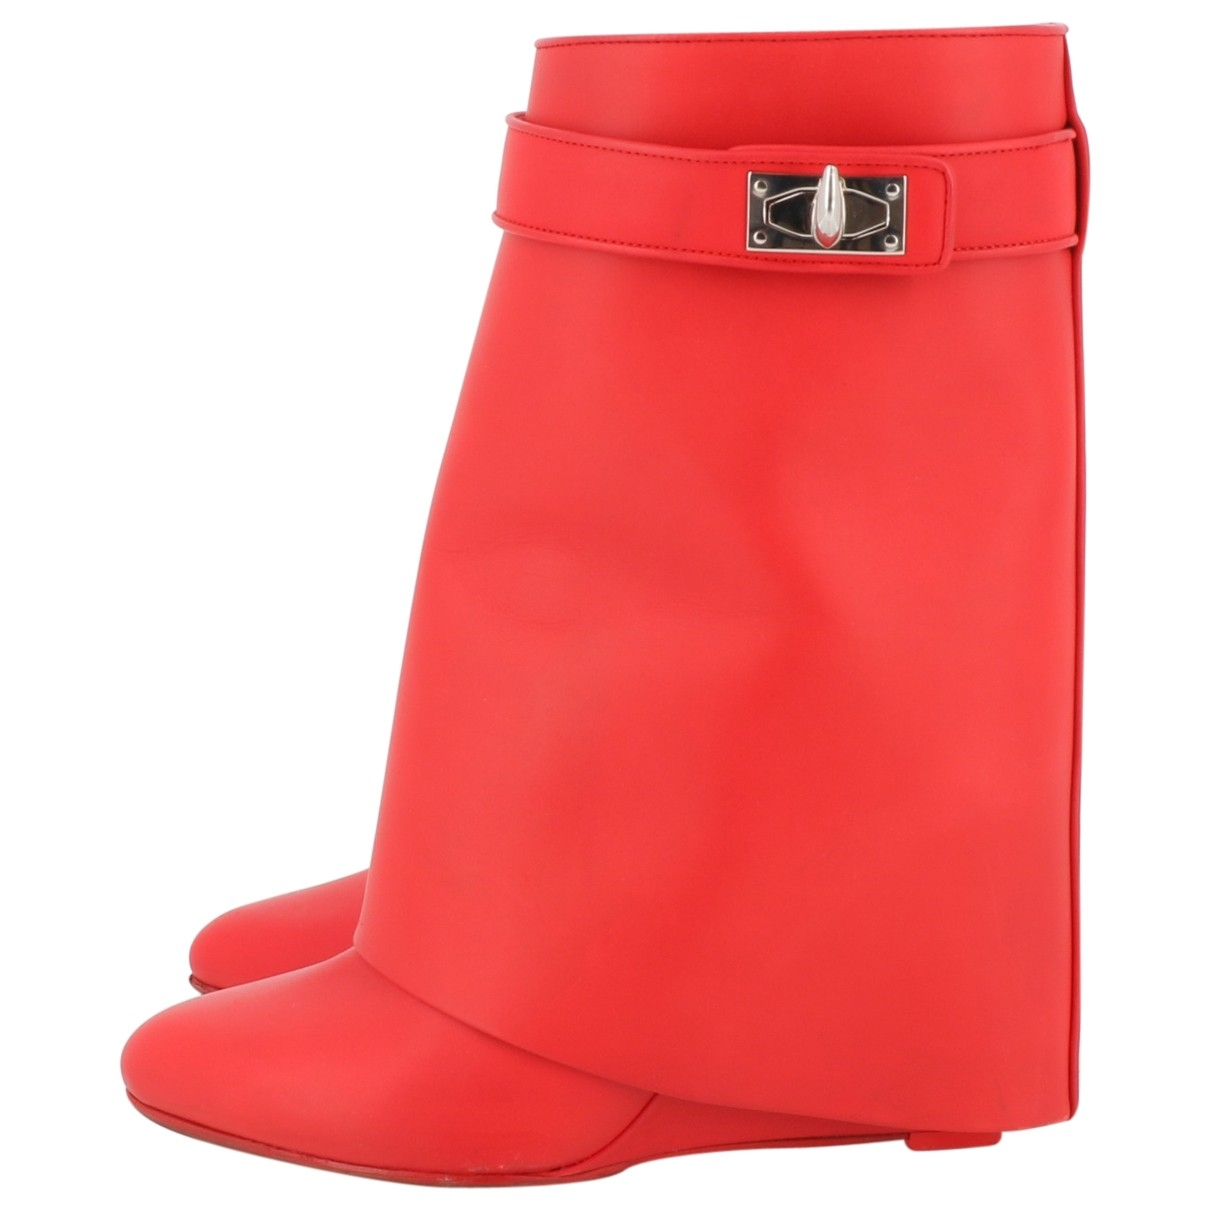 Givenchy Shark Red Leather Ankle boots for Women 36 EU